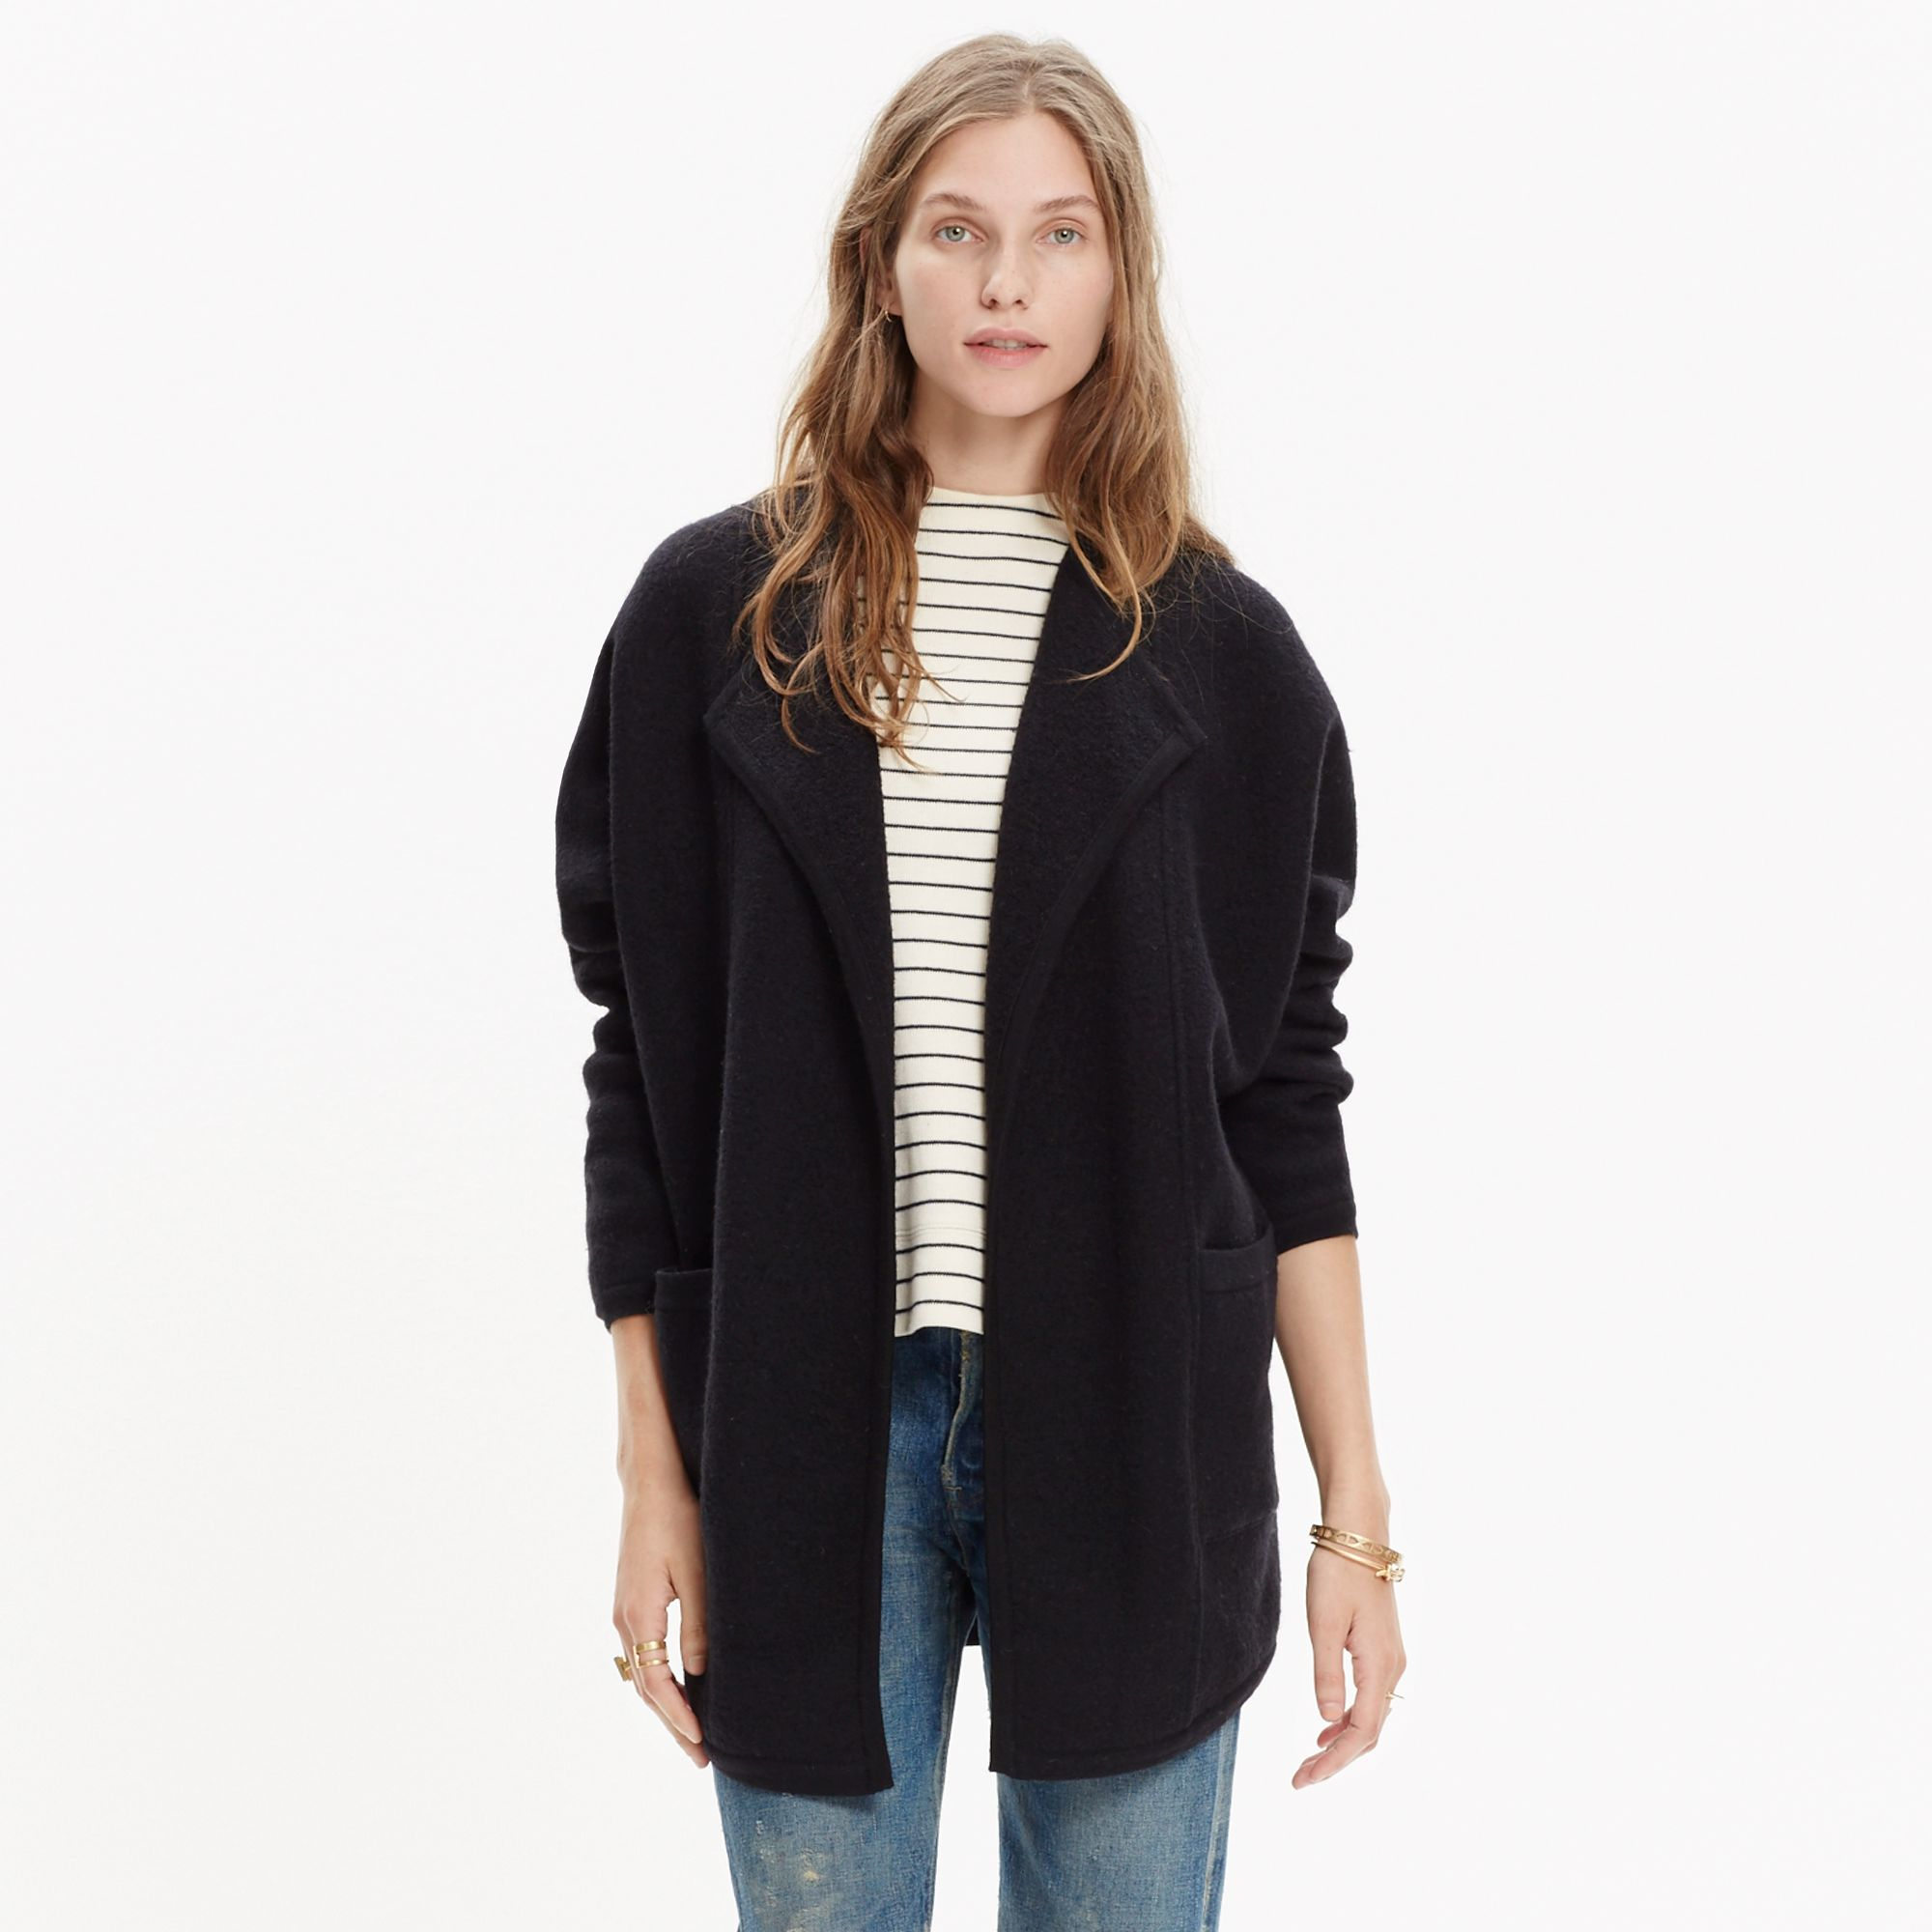 Women's sweater jackets come in both trending and classic styles. The right women's sweater coat is a personal choice that can dress up any outfit. For those days when it is too warm to wear a full jacket outdoors,sweater coats for .